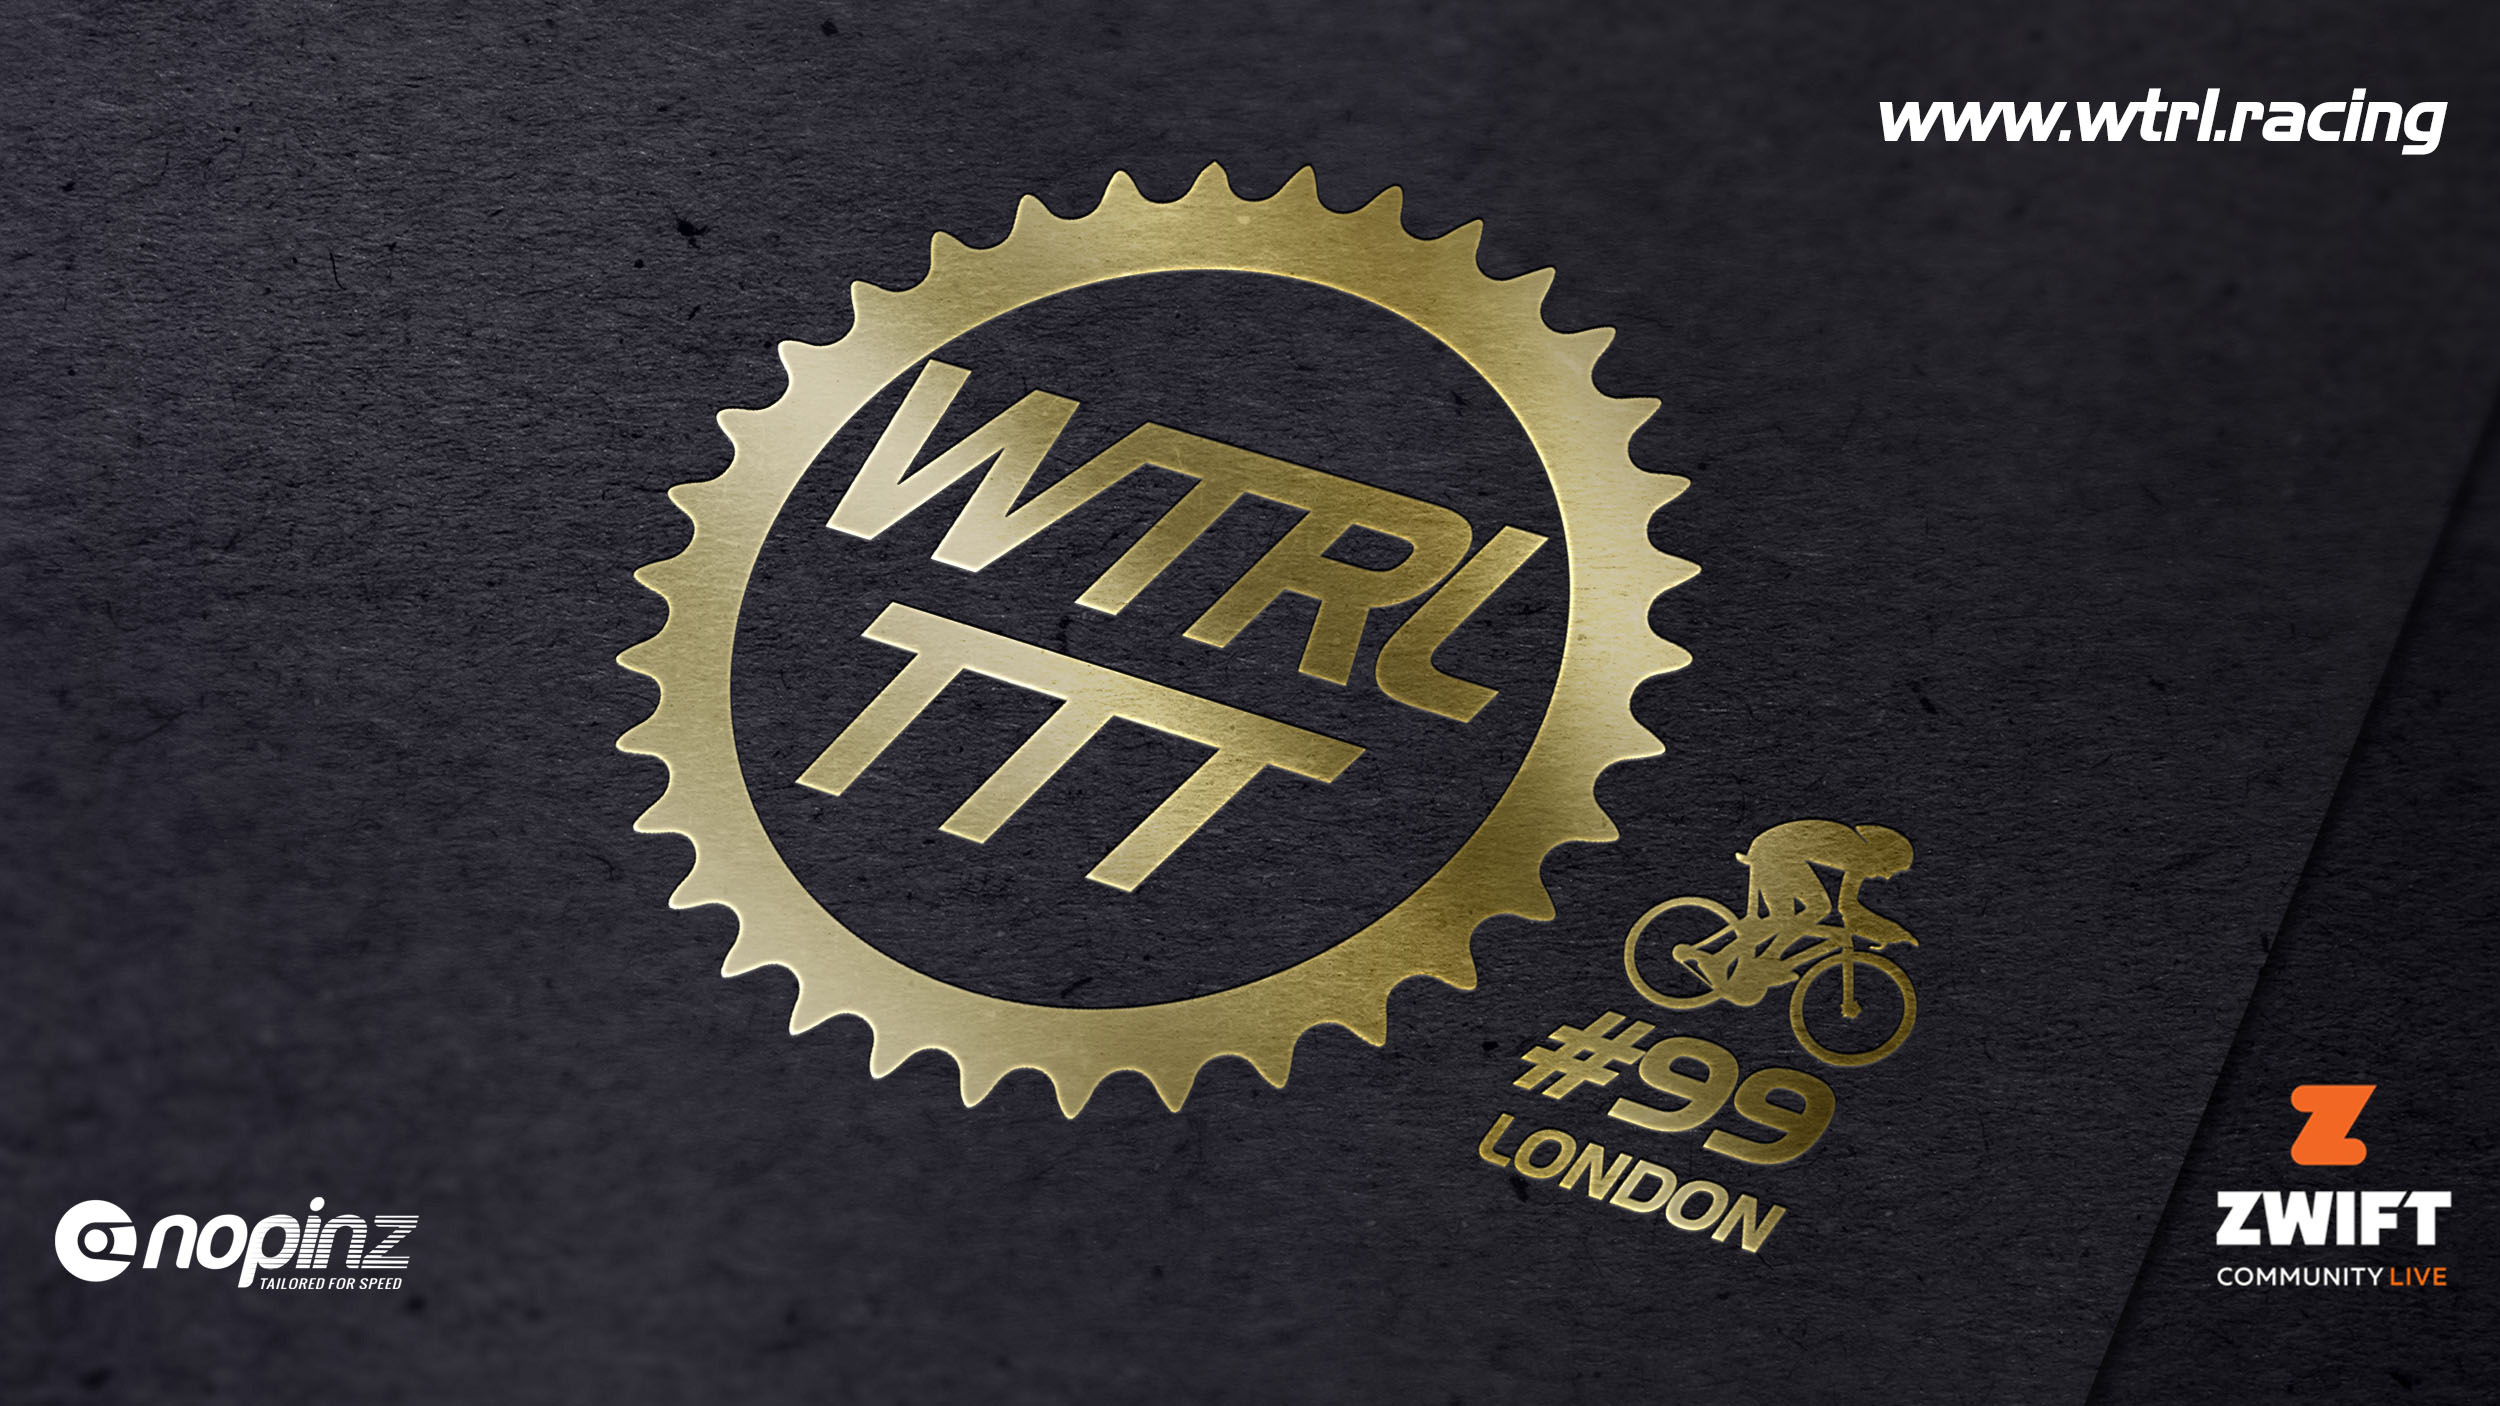 WTRL Team Time Trial #99